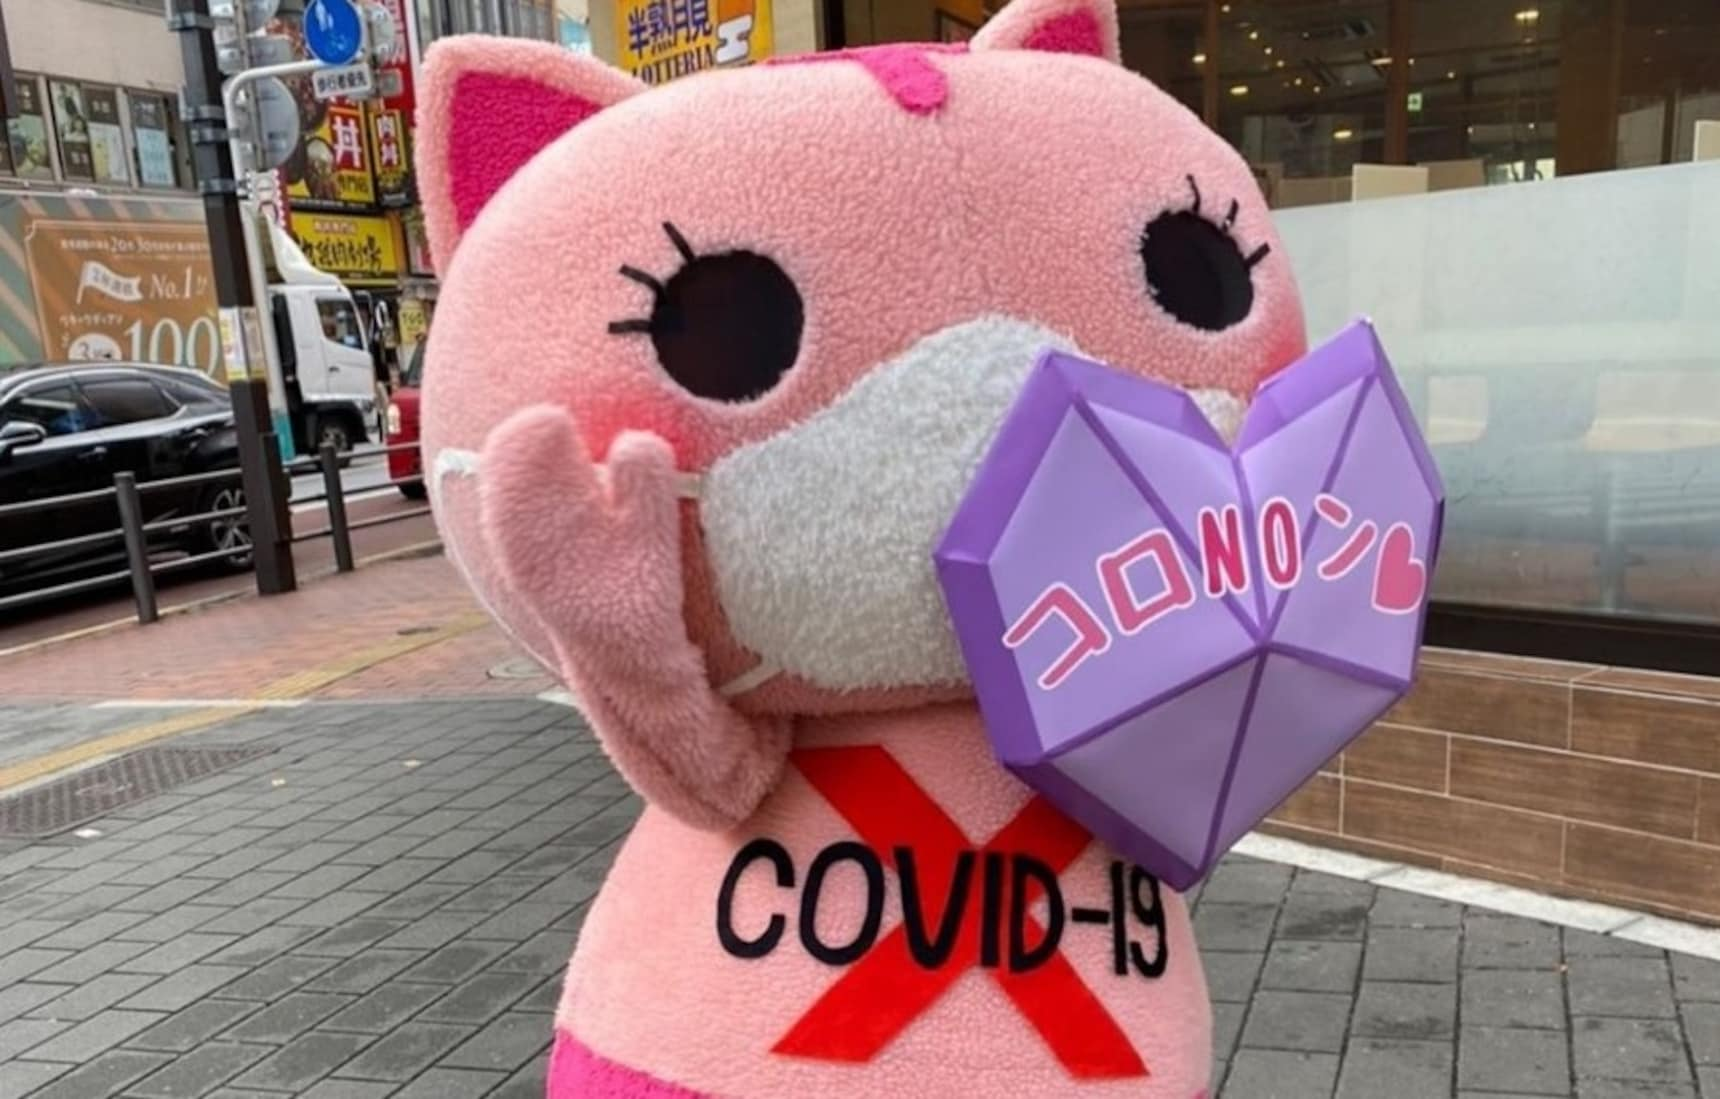 Japan's Cute New Mascot Came to Fight COVID-19